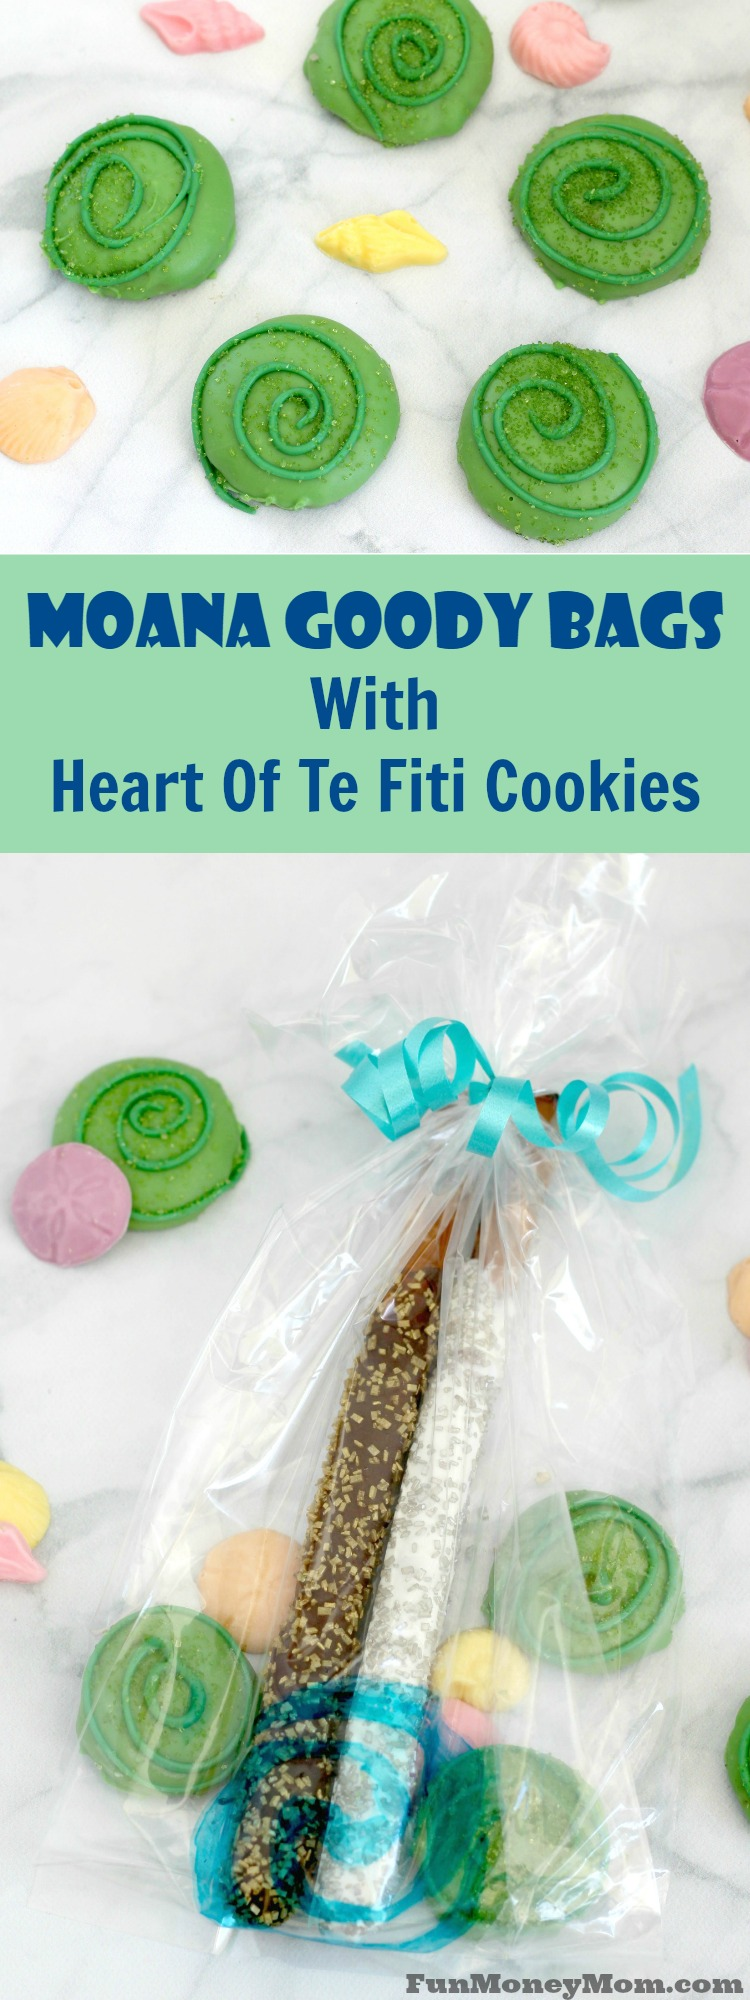 """Moana cookies - These Moana goody bags are perfect for your Moana party with Heart of Te Fiti cookies and """"shiny"""" stuff for Tamatoa the crab!"""